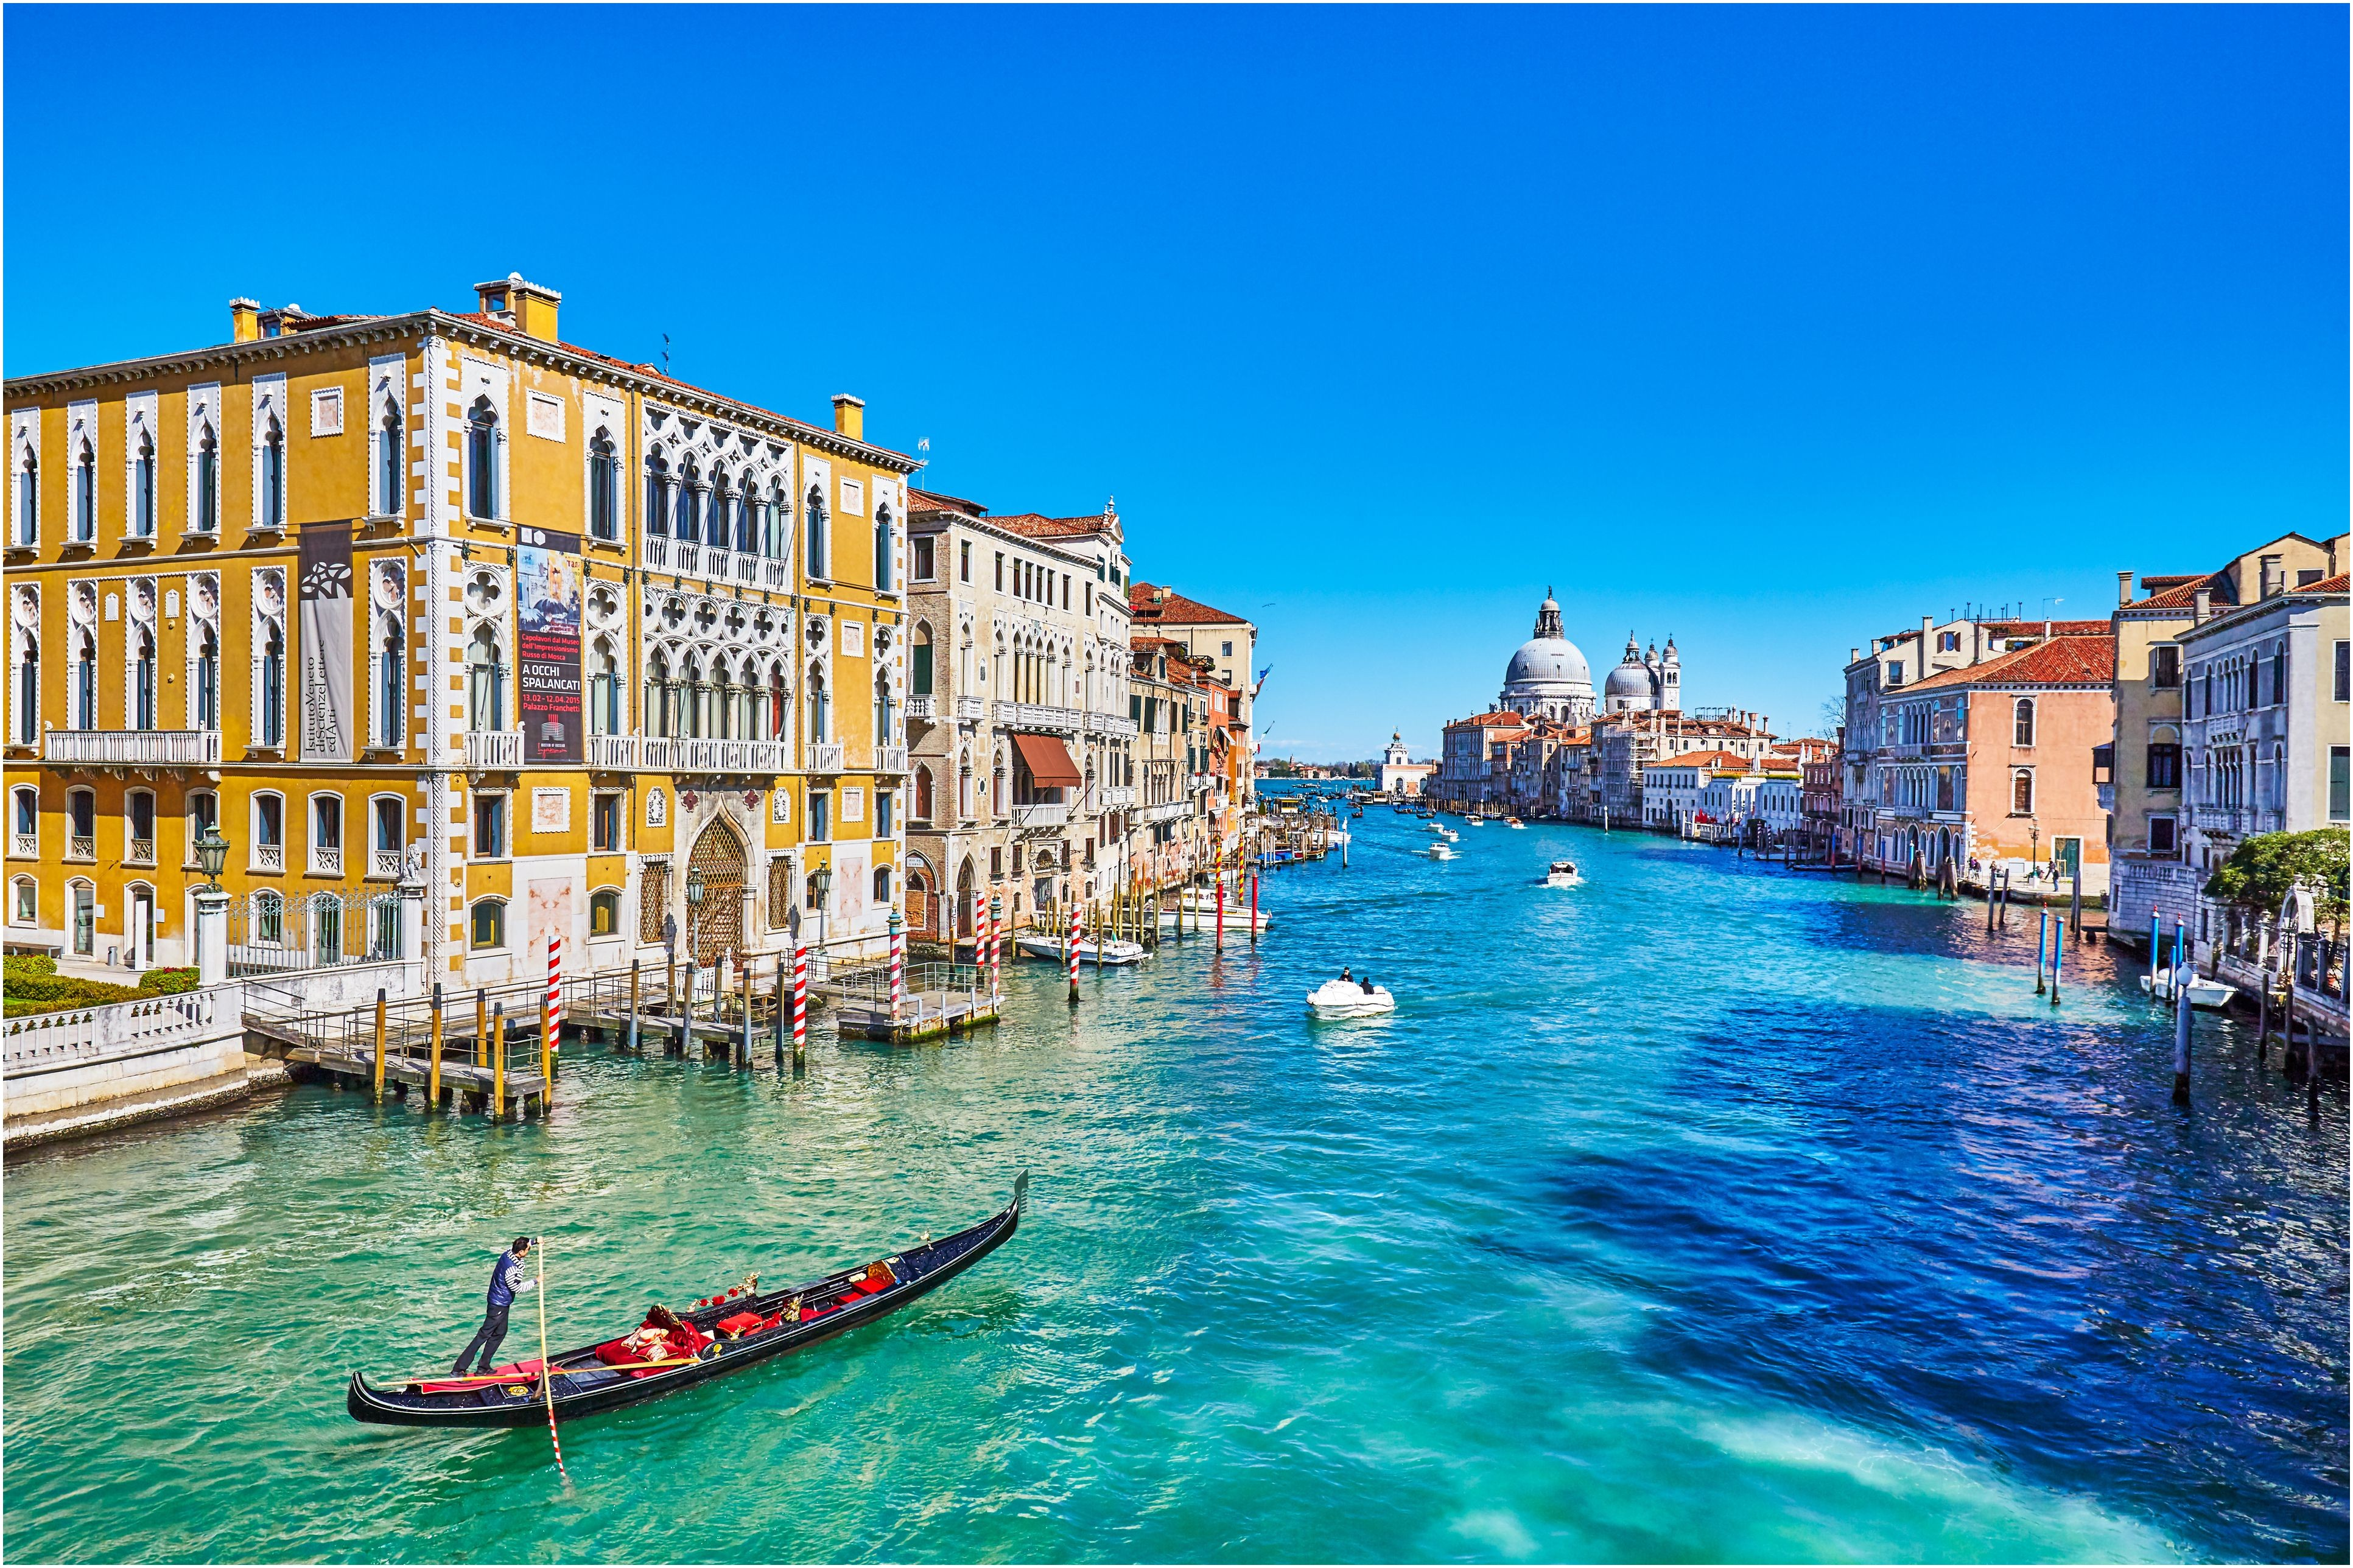 grand canal in venice italy 5a89a0d b a486b